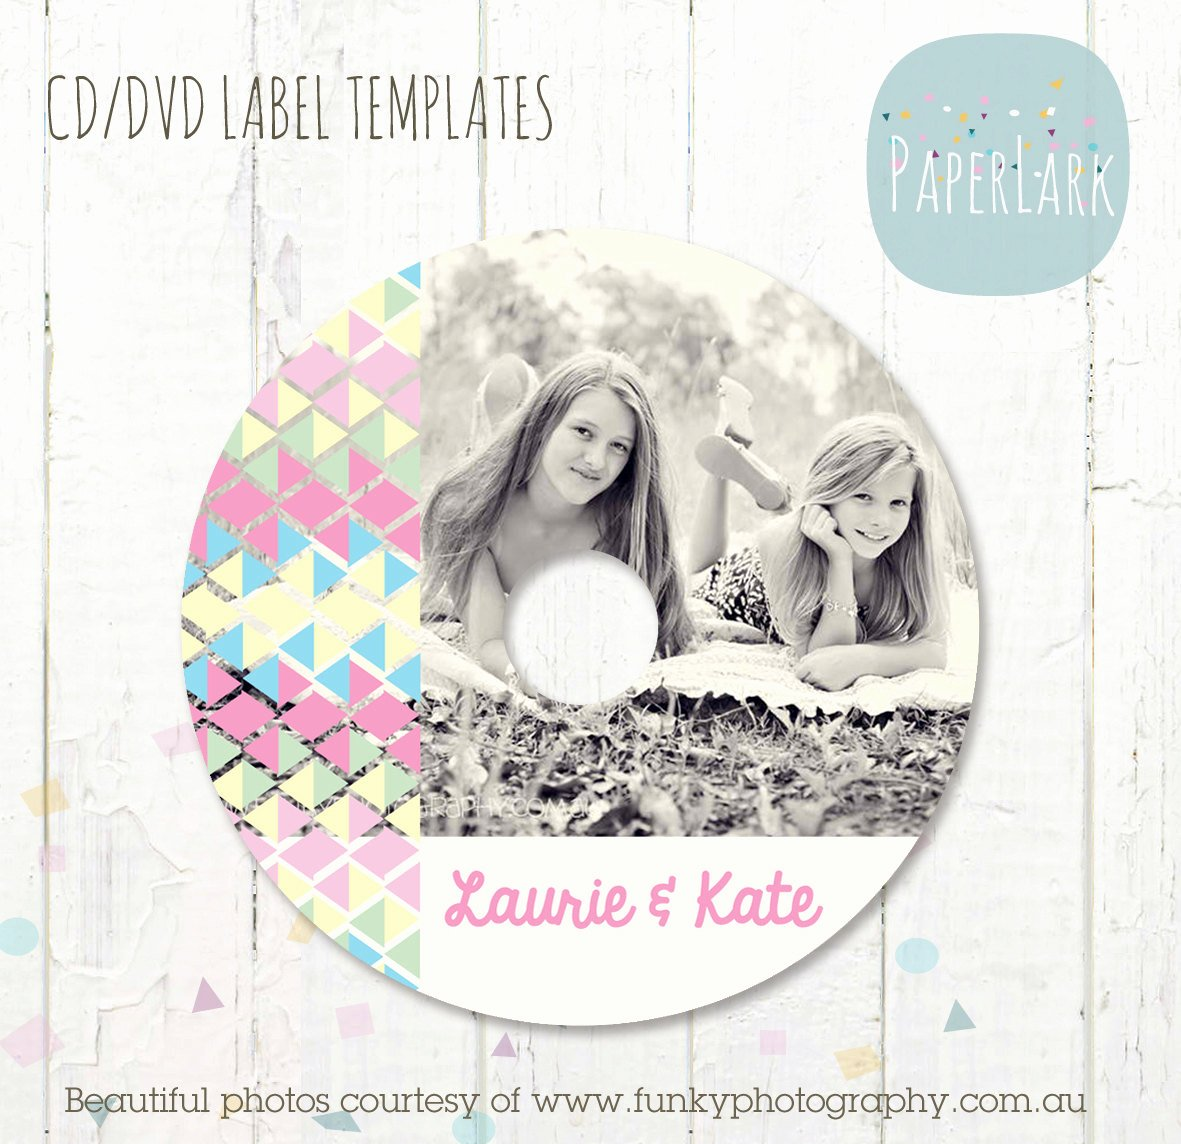 Cd Label Template Photoshop Unique Cd Dvd Label Photoshop Template Es004 Instant Download